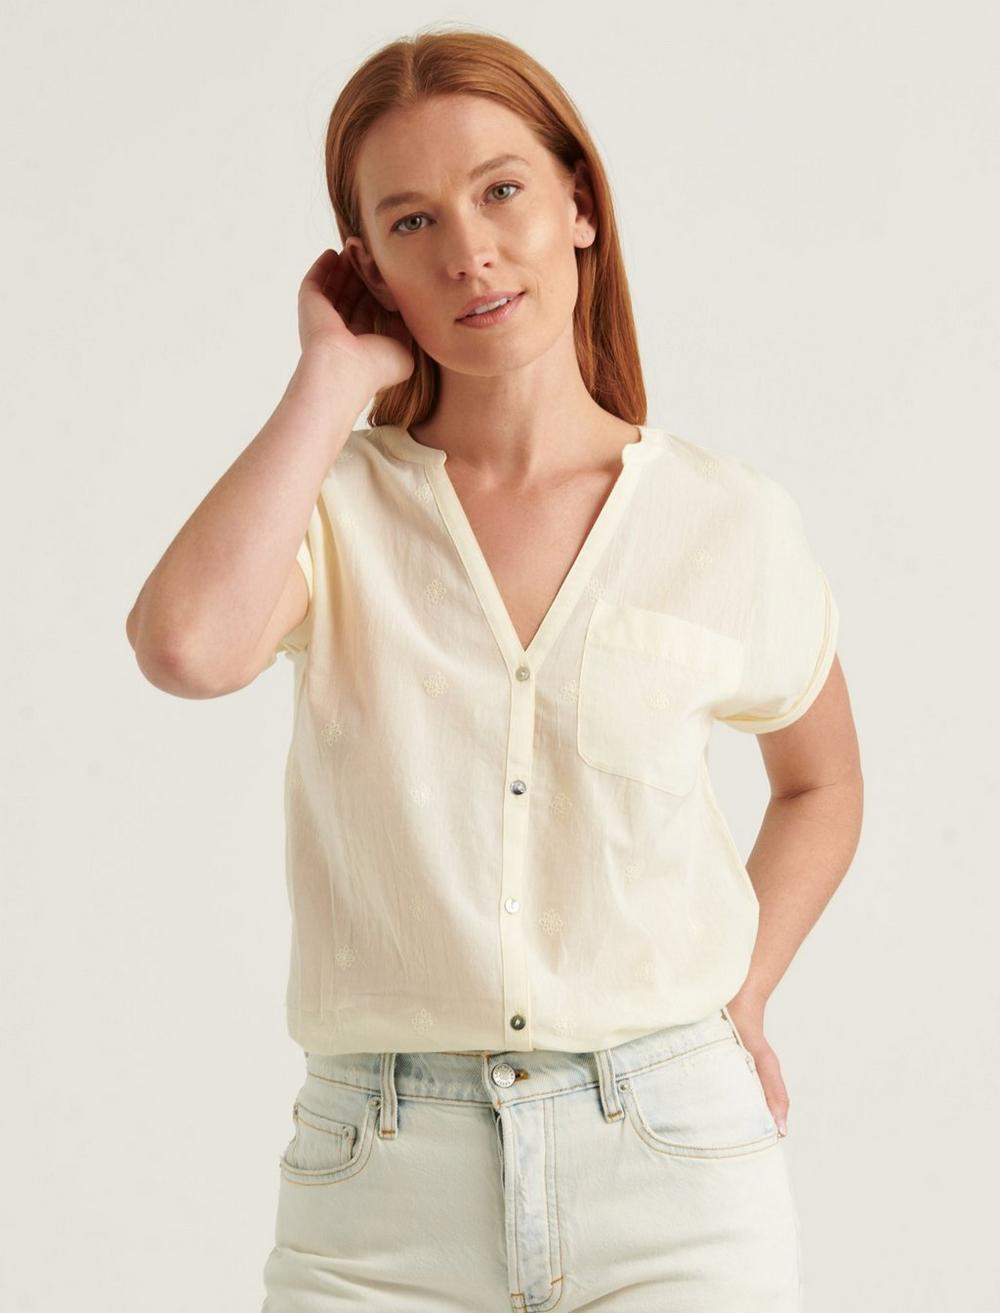 SHORT SLEEVE WOVEN MIX BUTTON DOWN TOP, image 1